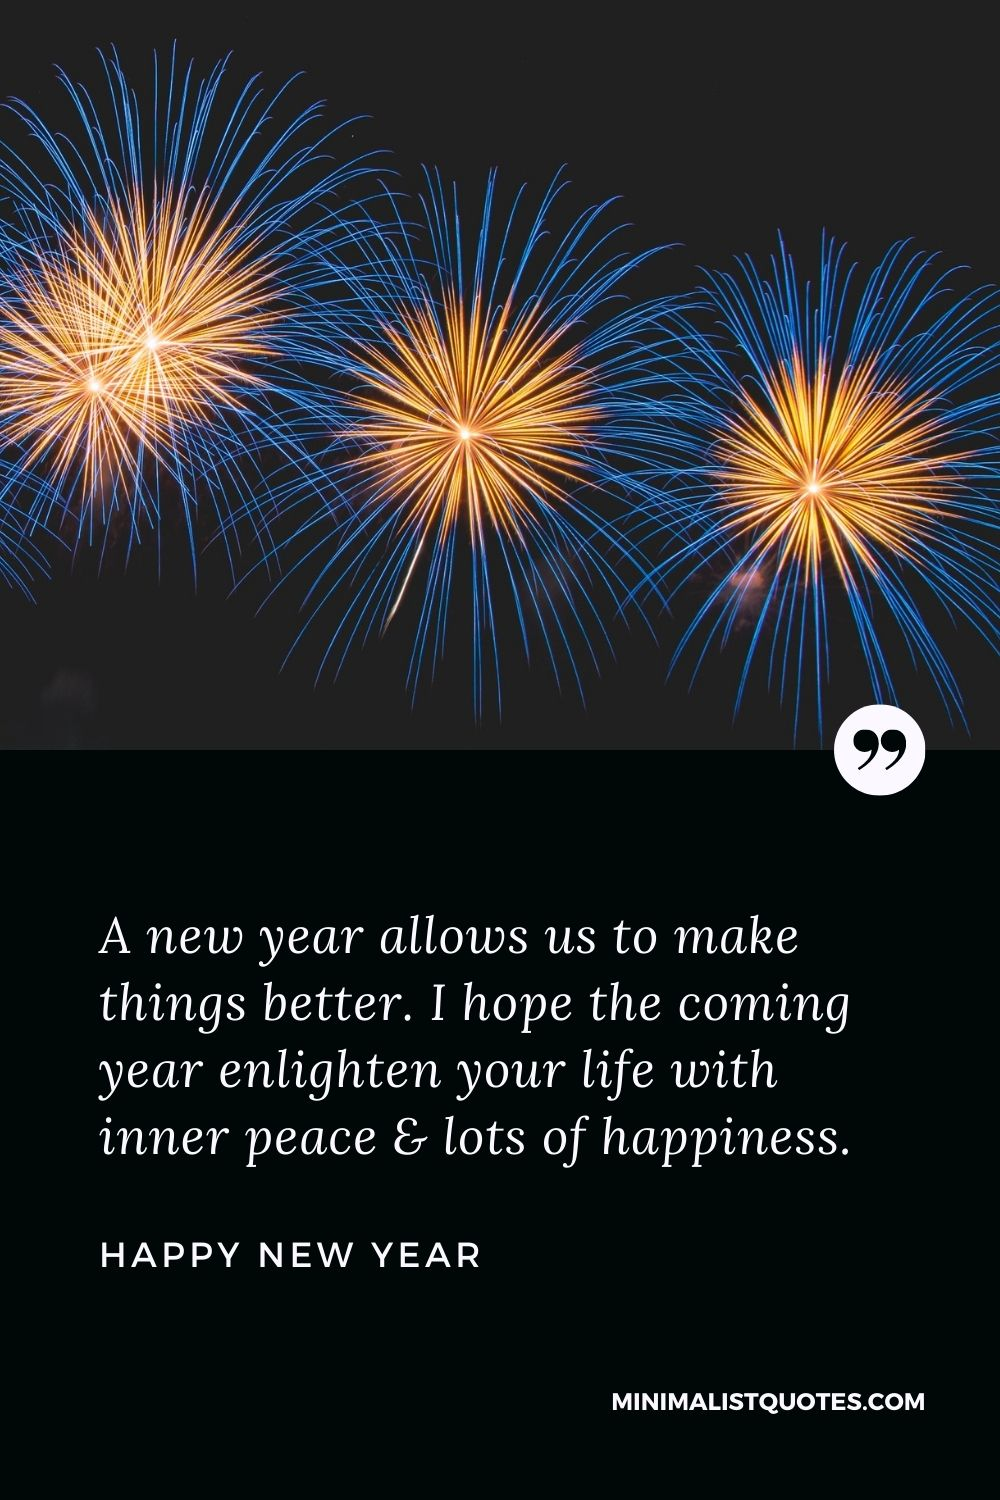 New Year Wish - A new year allows usto make things better. I hope the coming year enlighten your life with inner peace & lots of happiness.